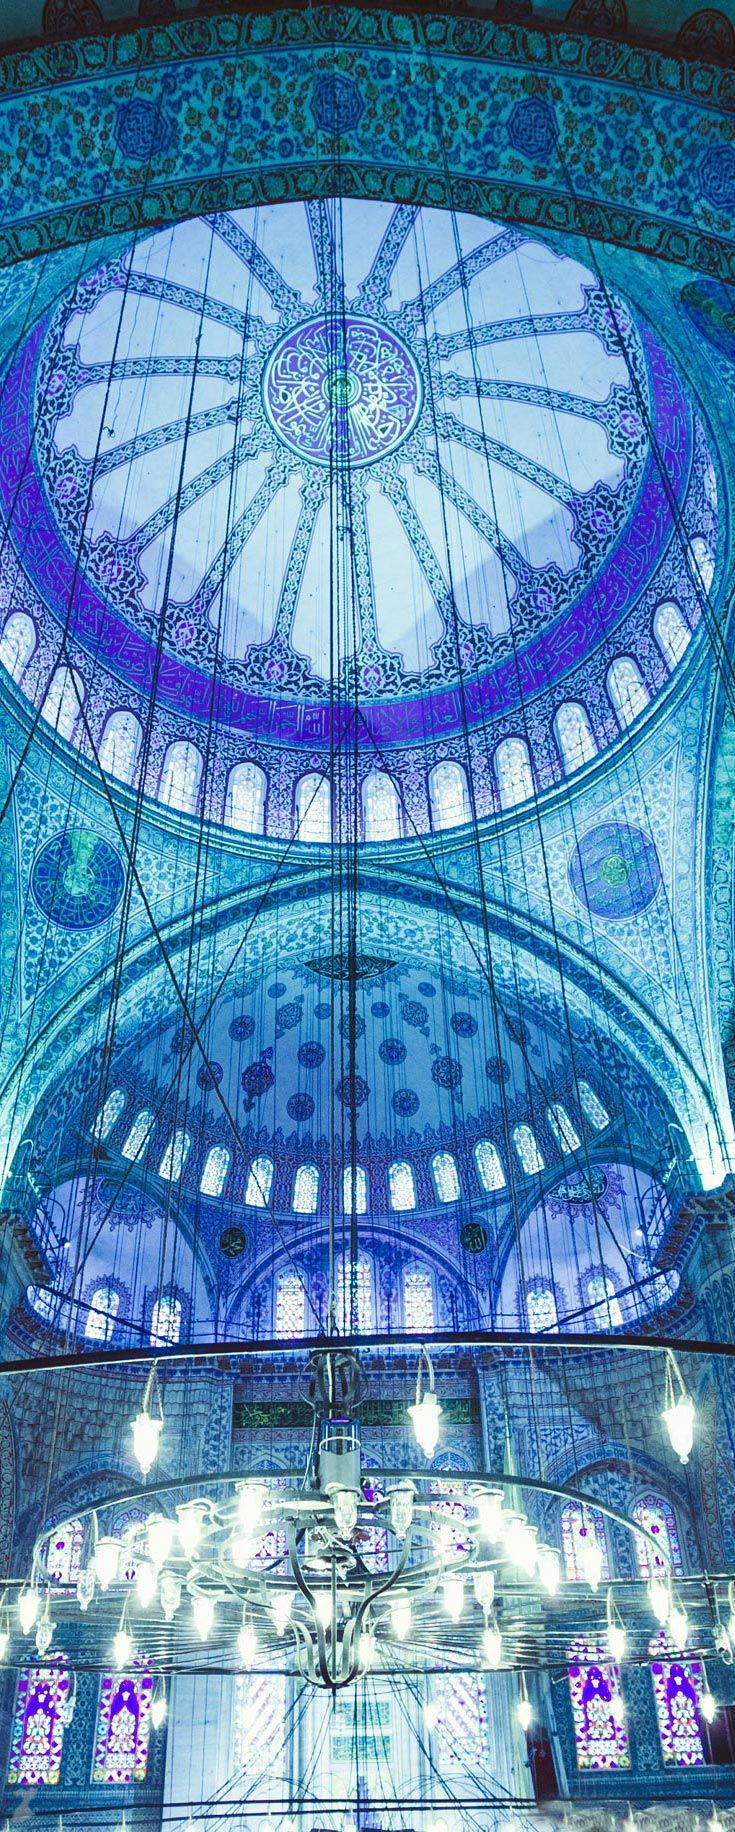 Sultan Ahmed Mosque -Blue Mosque- Istanbul | Turkey